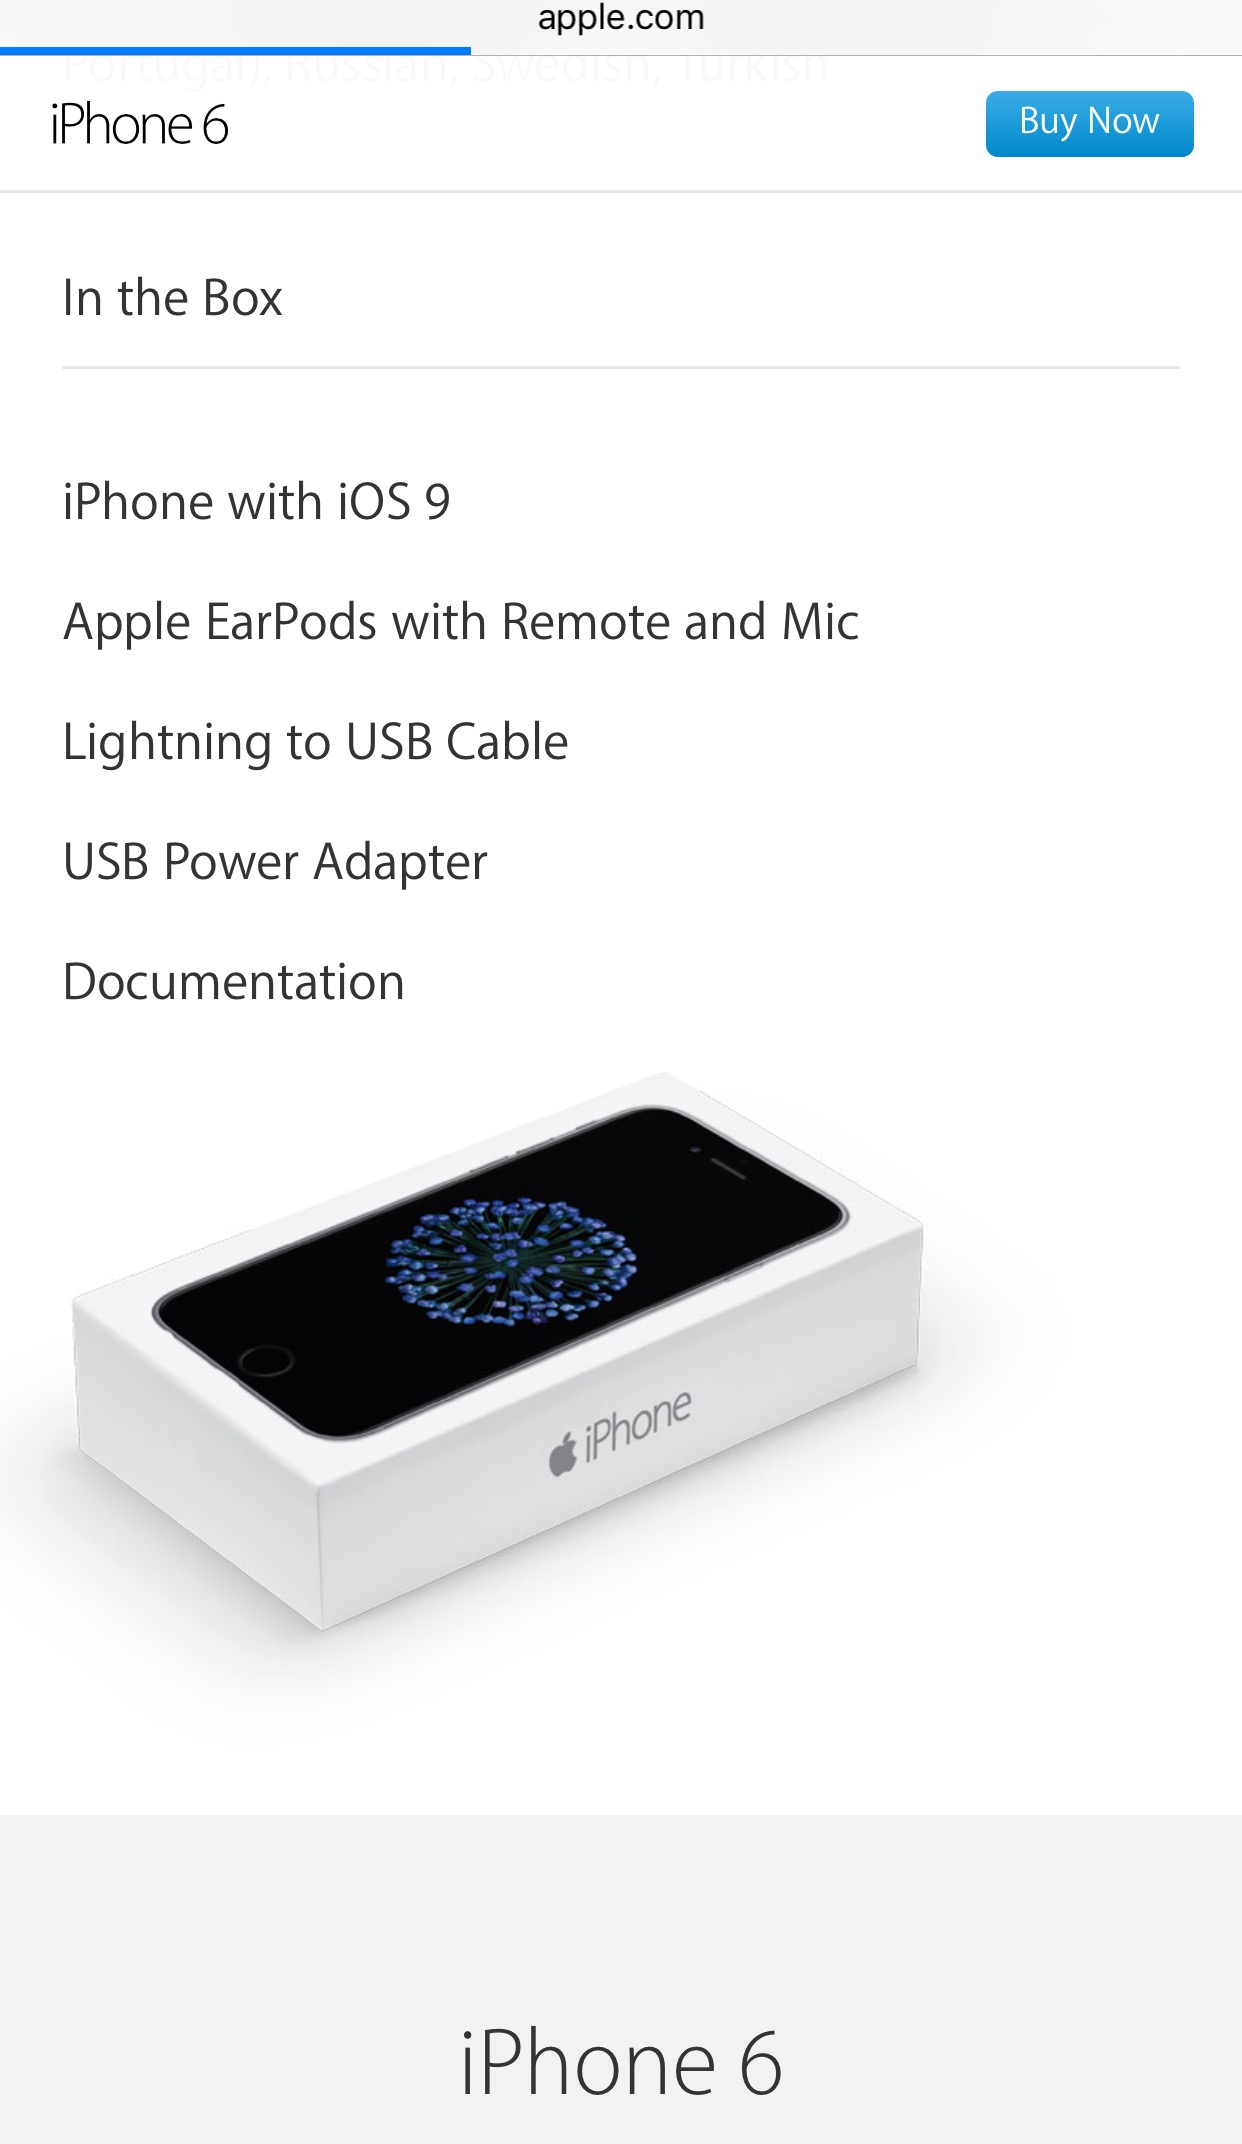 Refreshed iPhone 6/6 Plus box? | MacRumors Forums